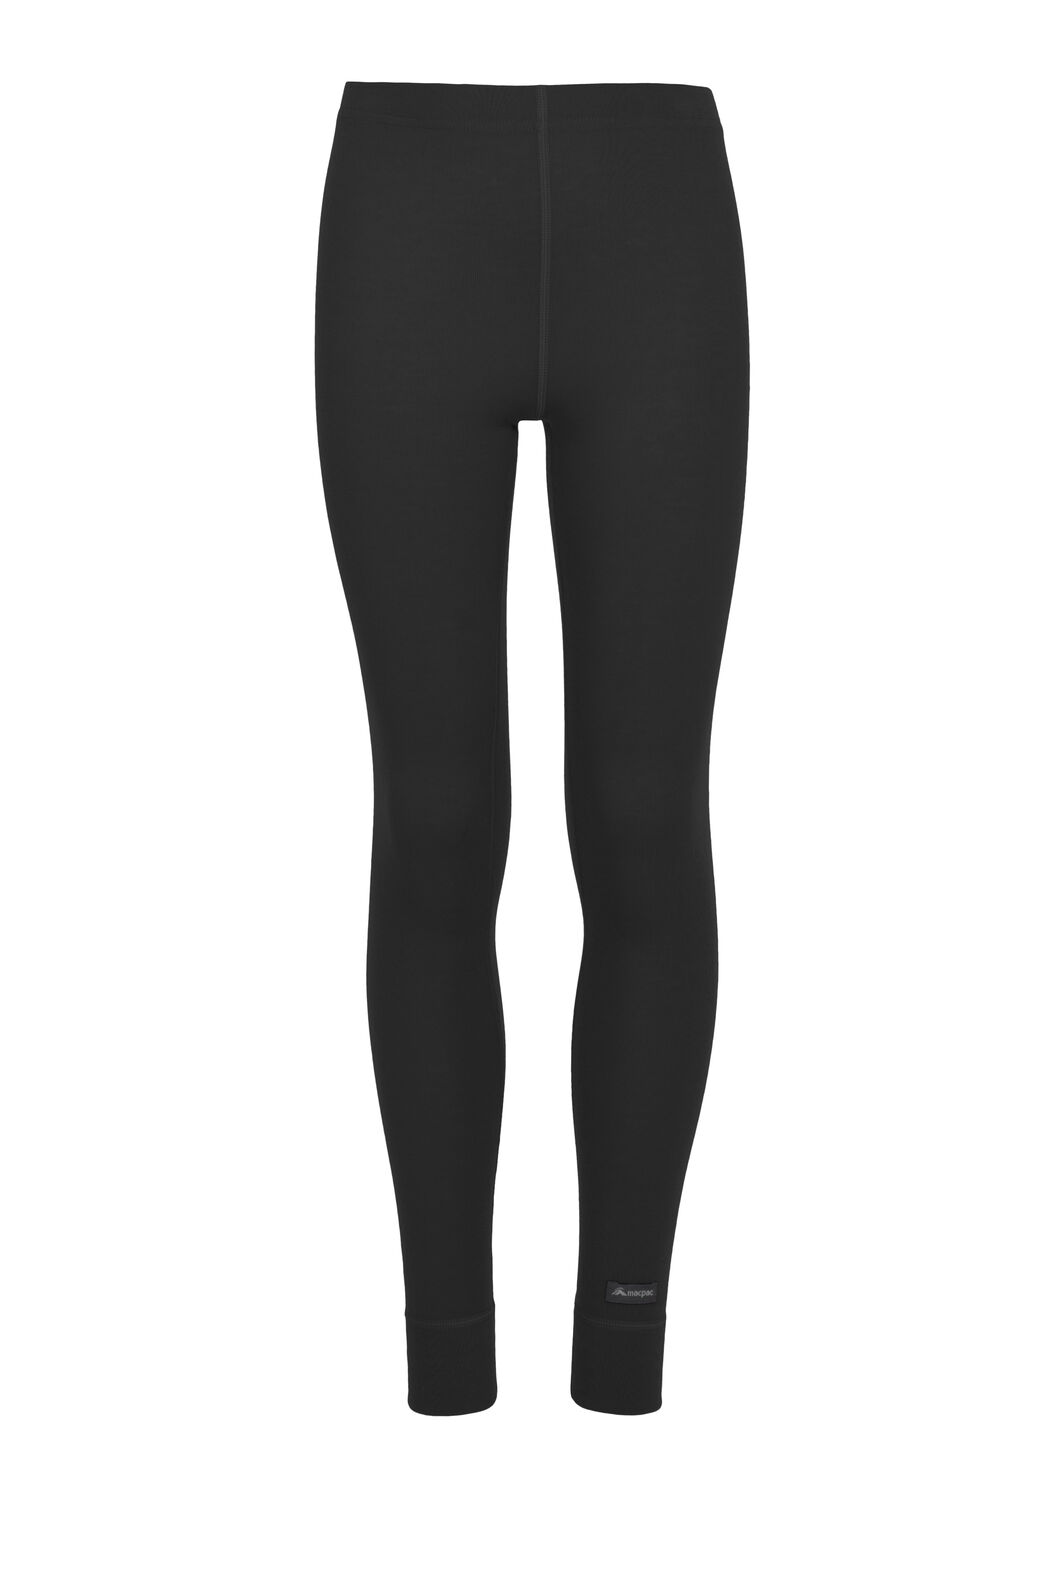 Macpac Geothermal Pants - Kids', Black, hi-res